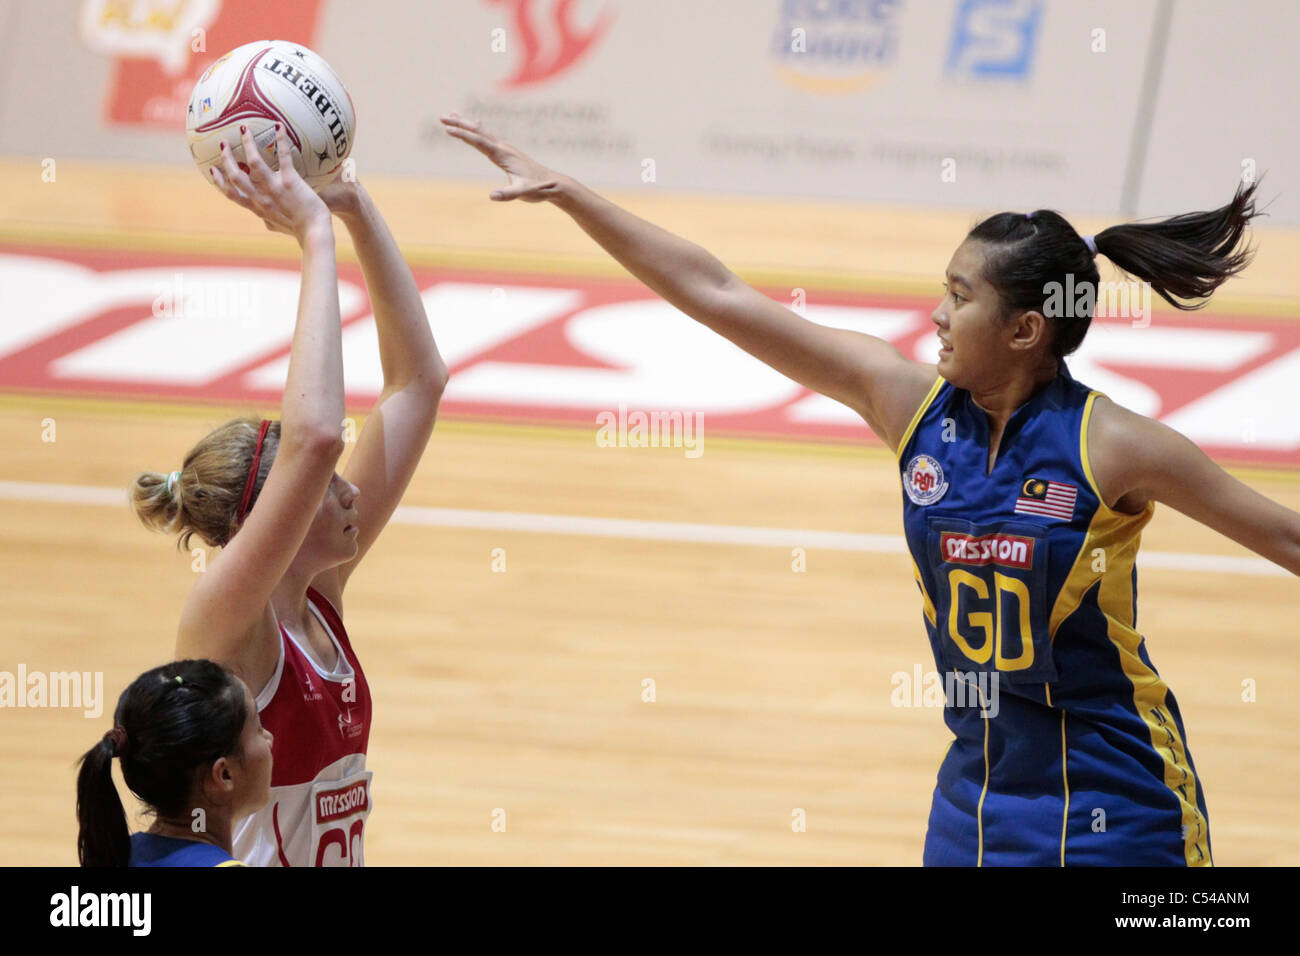 06.07.2011 Noramirah Dayana of Malaysia(right) goes in for the block on Joanne Harten during the Pool D match between - Stock Image